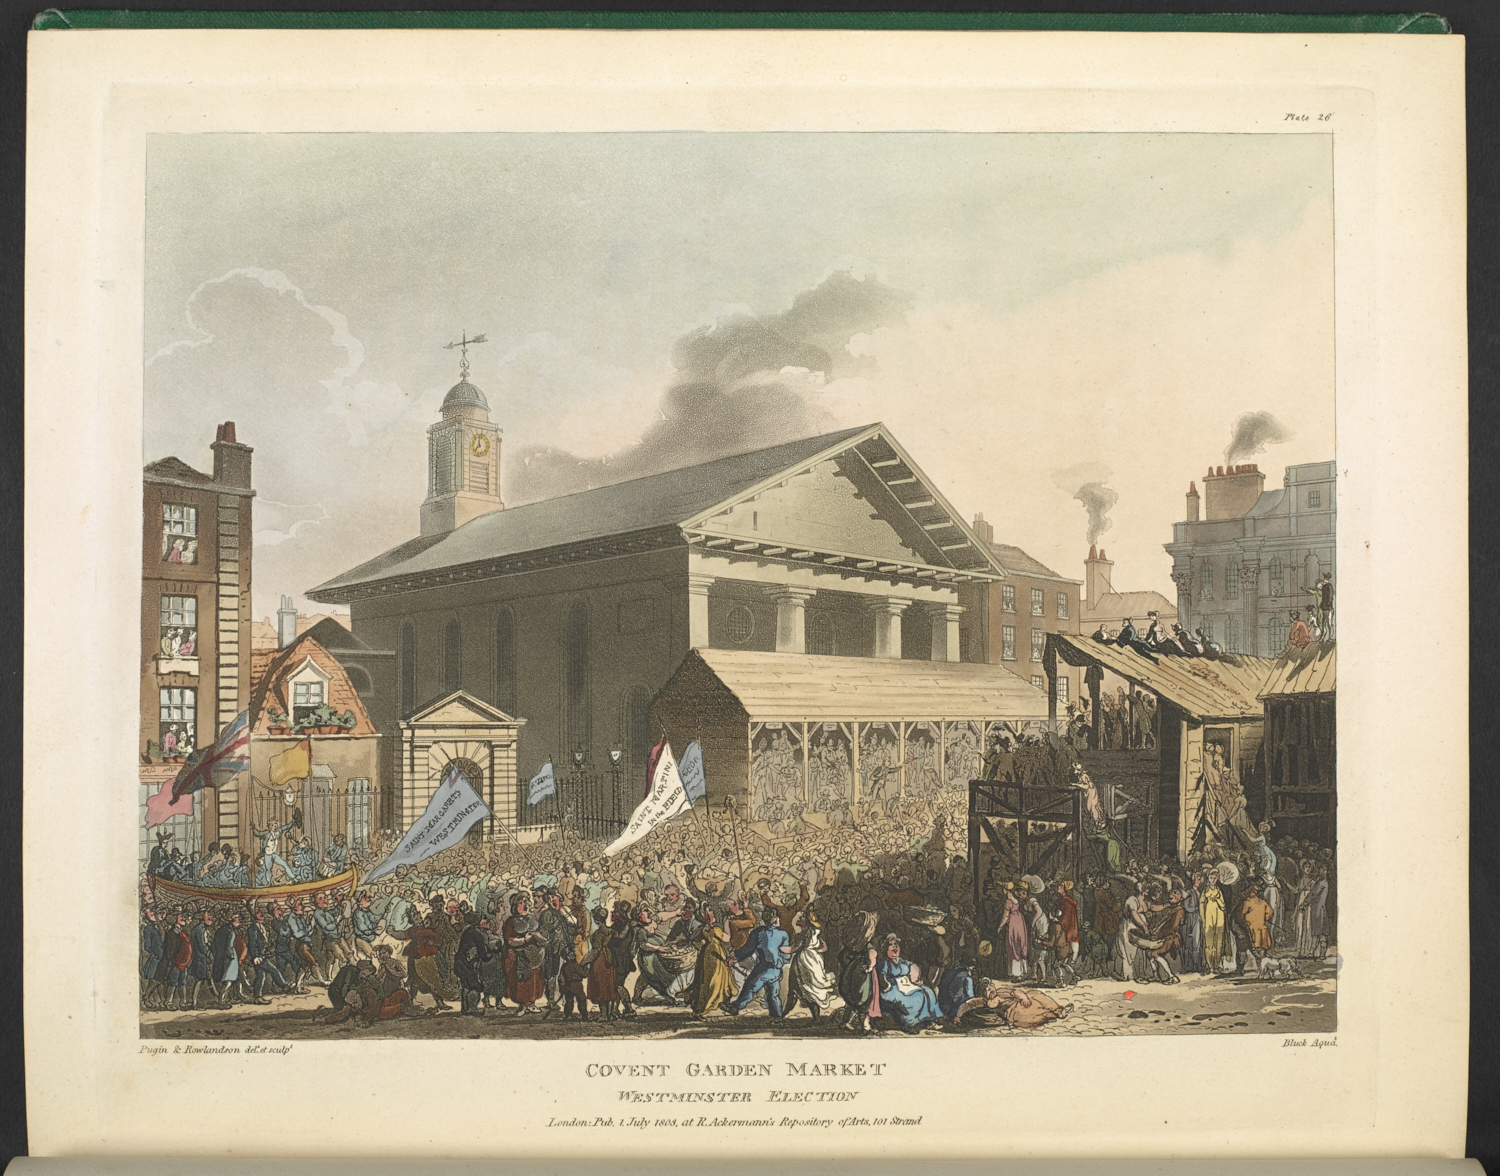 Thomas Rowlandson, Augustus Charles Pugin, and John Bluck, COVENT GARDEN MARKET WESTMINSTER ELECTION, from The Microcosm of London, (London: Ackermann, 1808), etching and aquatint, 23.1 x 27.9 cm C.194.B.305-307 (vol.I, plate facing p.209)